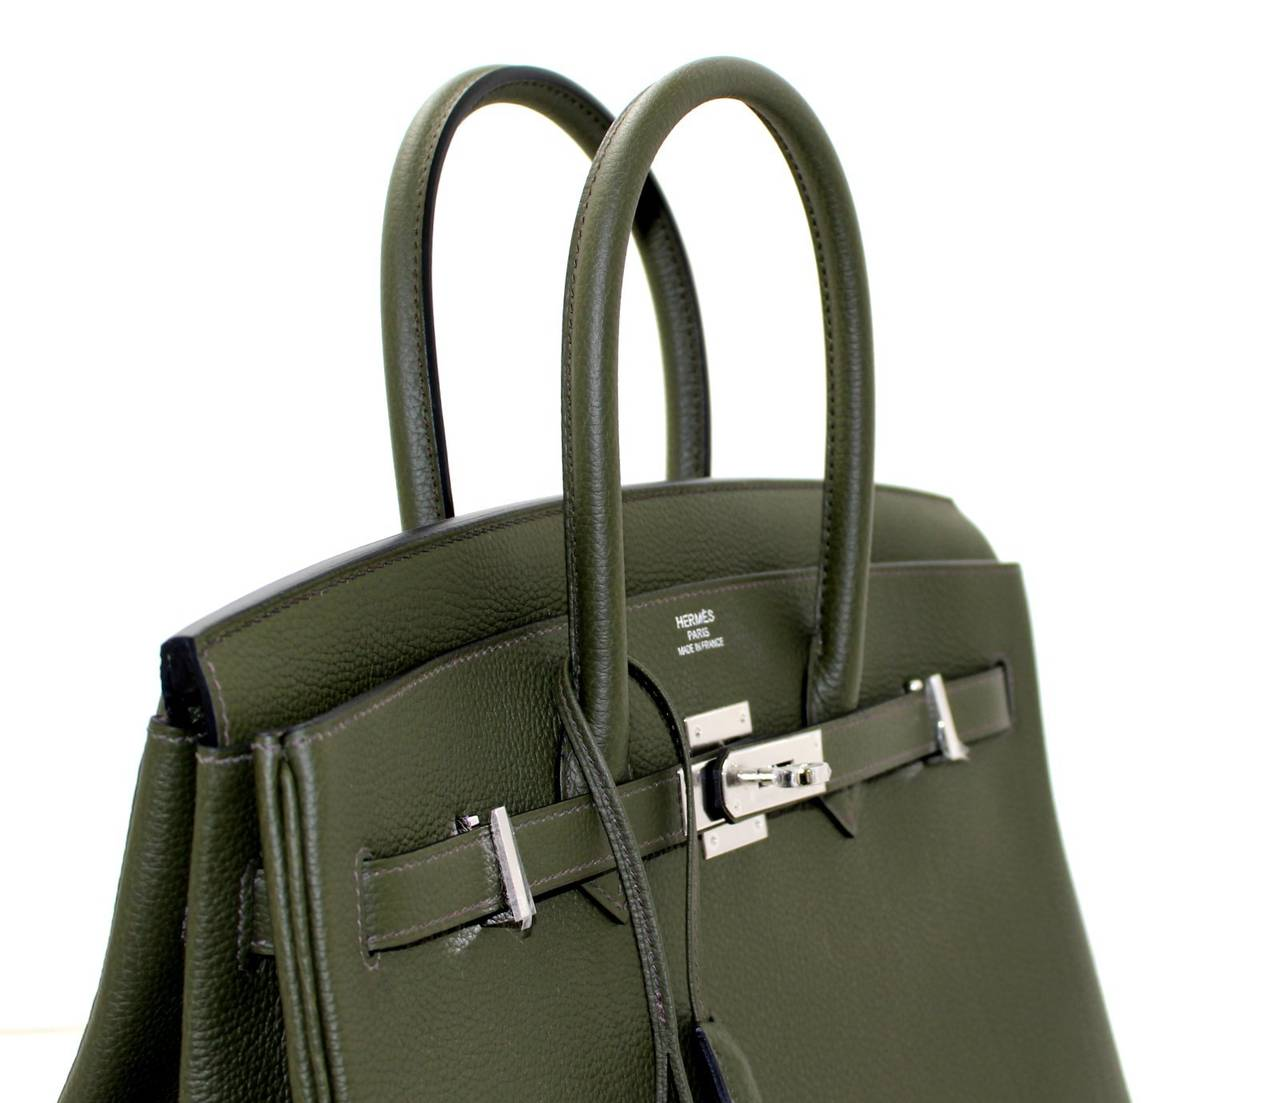 Hermes Birkin Bag in Vert Olive green Togo Leather, 35 cm size 5